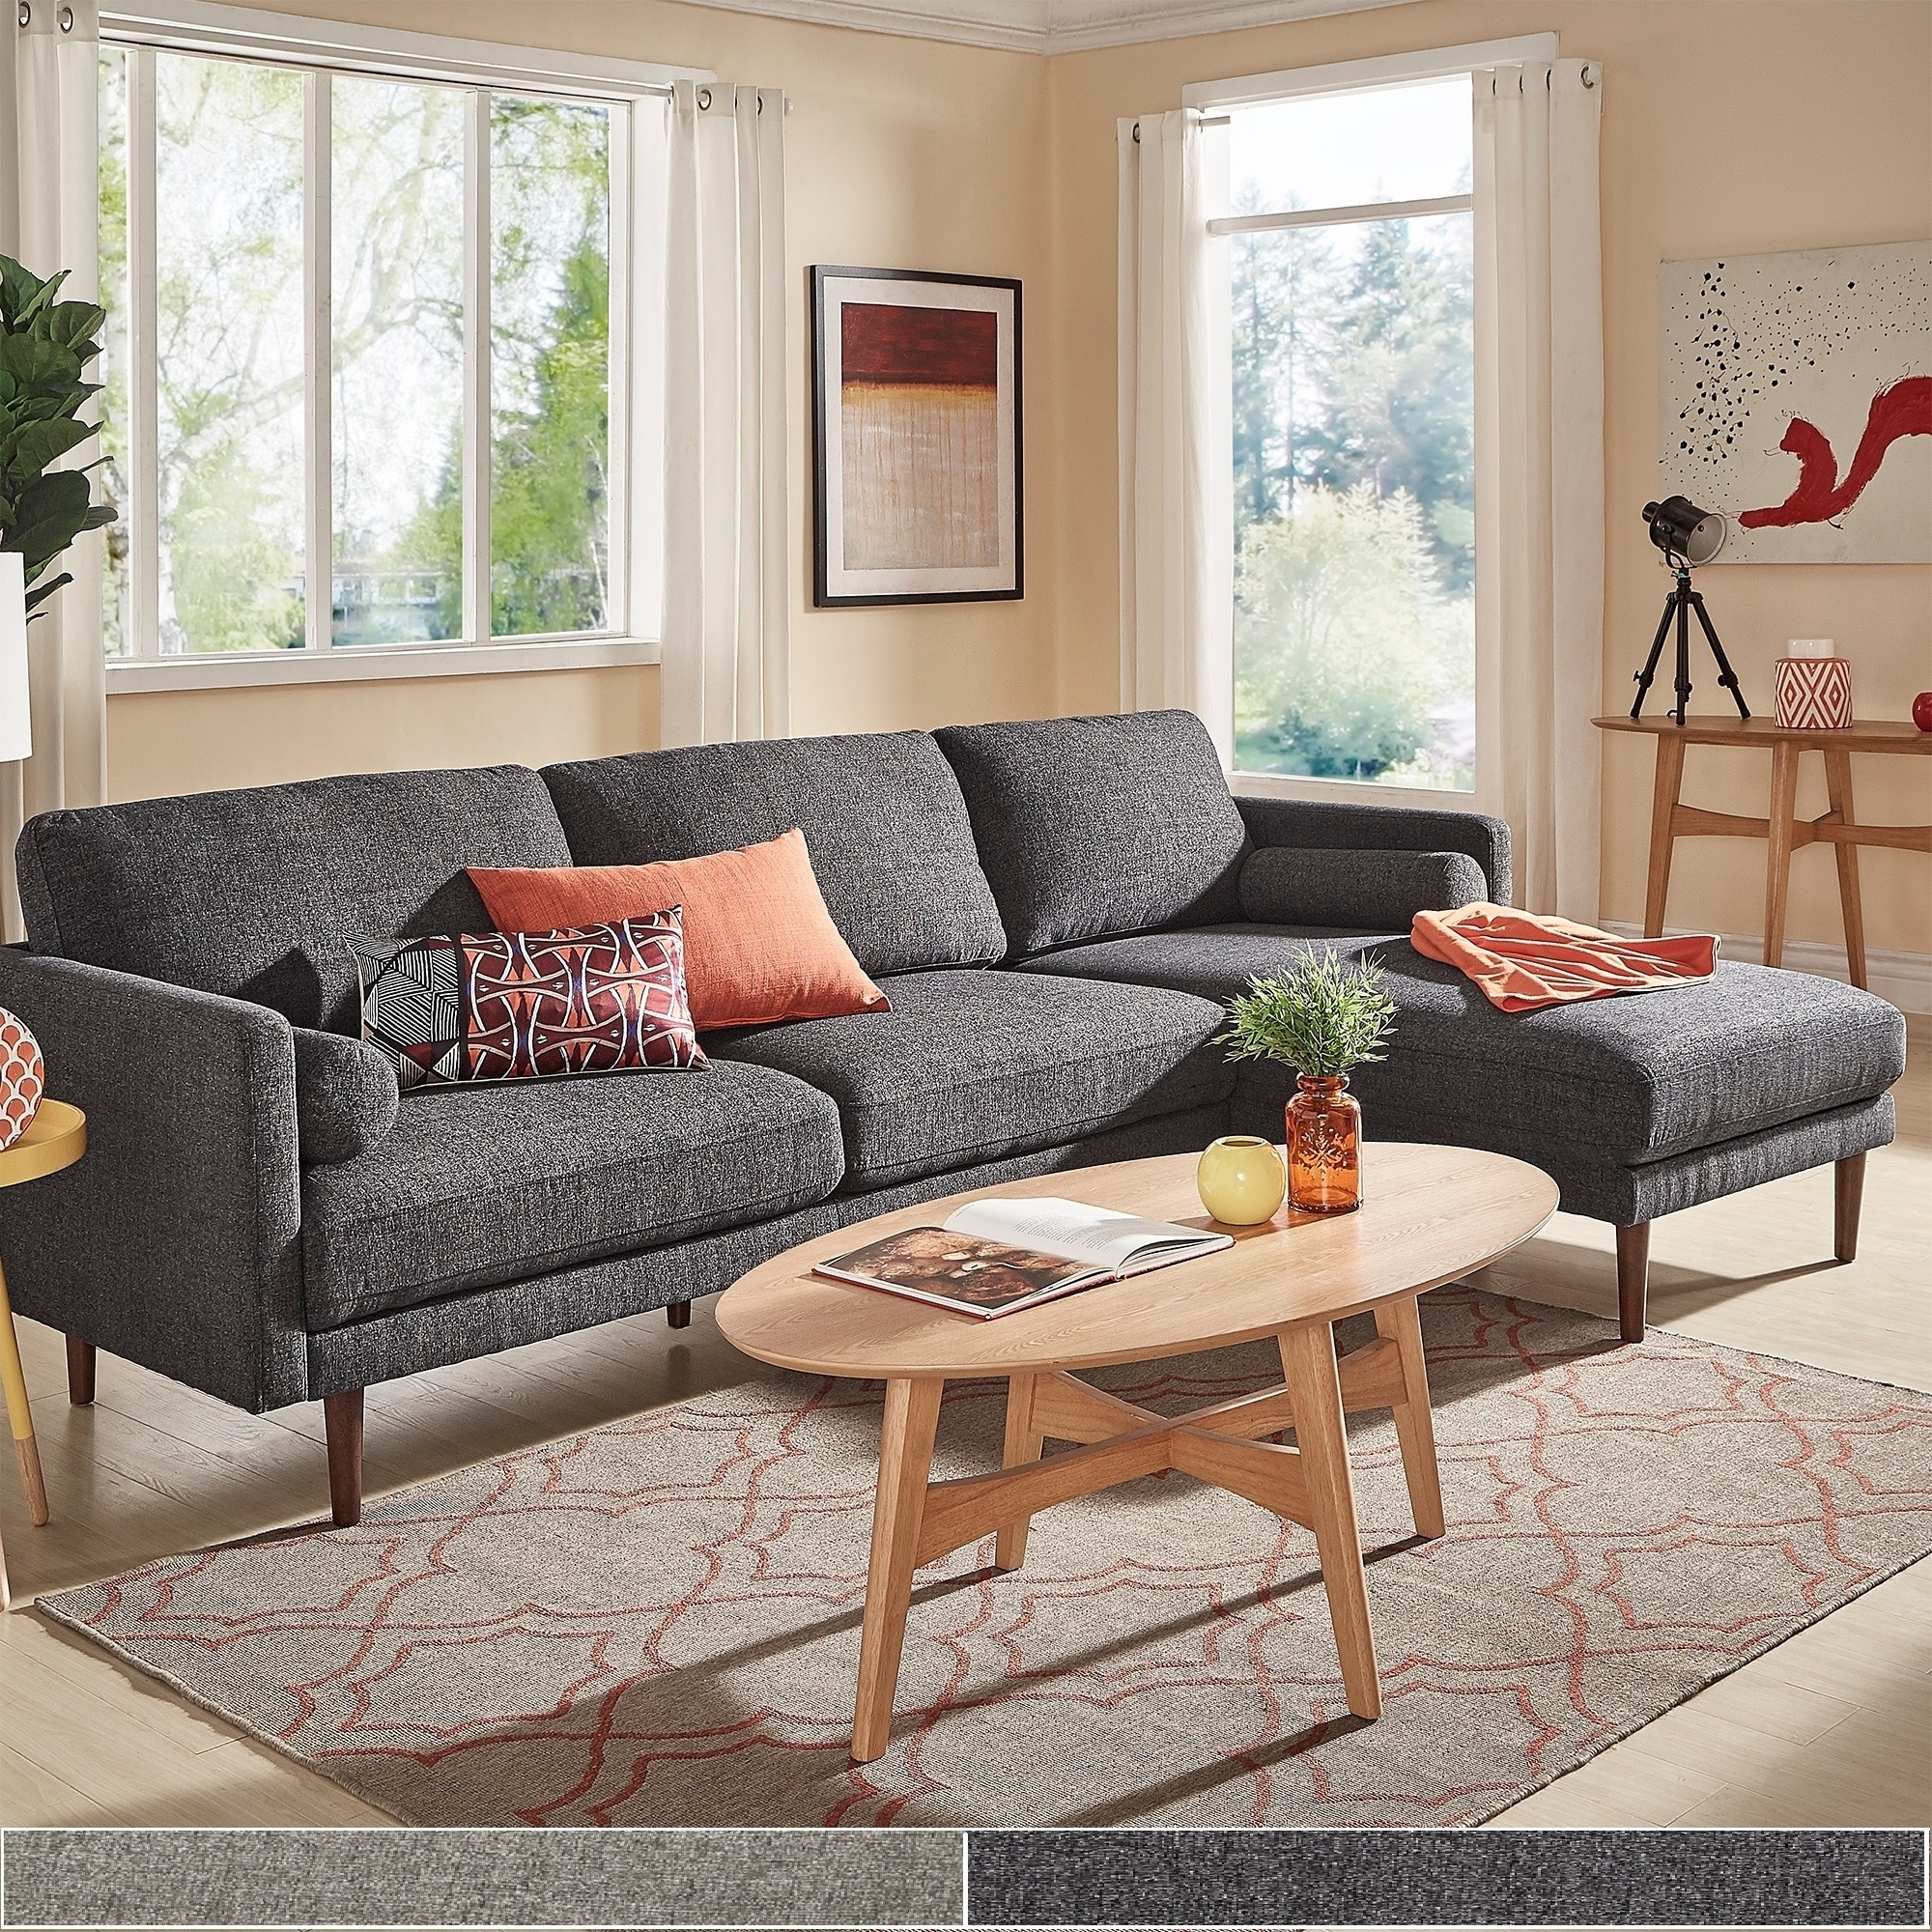 Sofa Lounge Gold Coast Buy Left Facing Sectional Sofas Online At Overstock Our